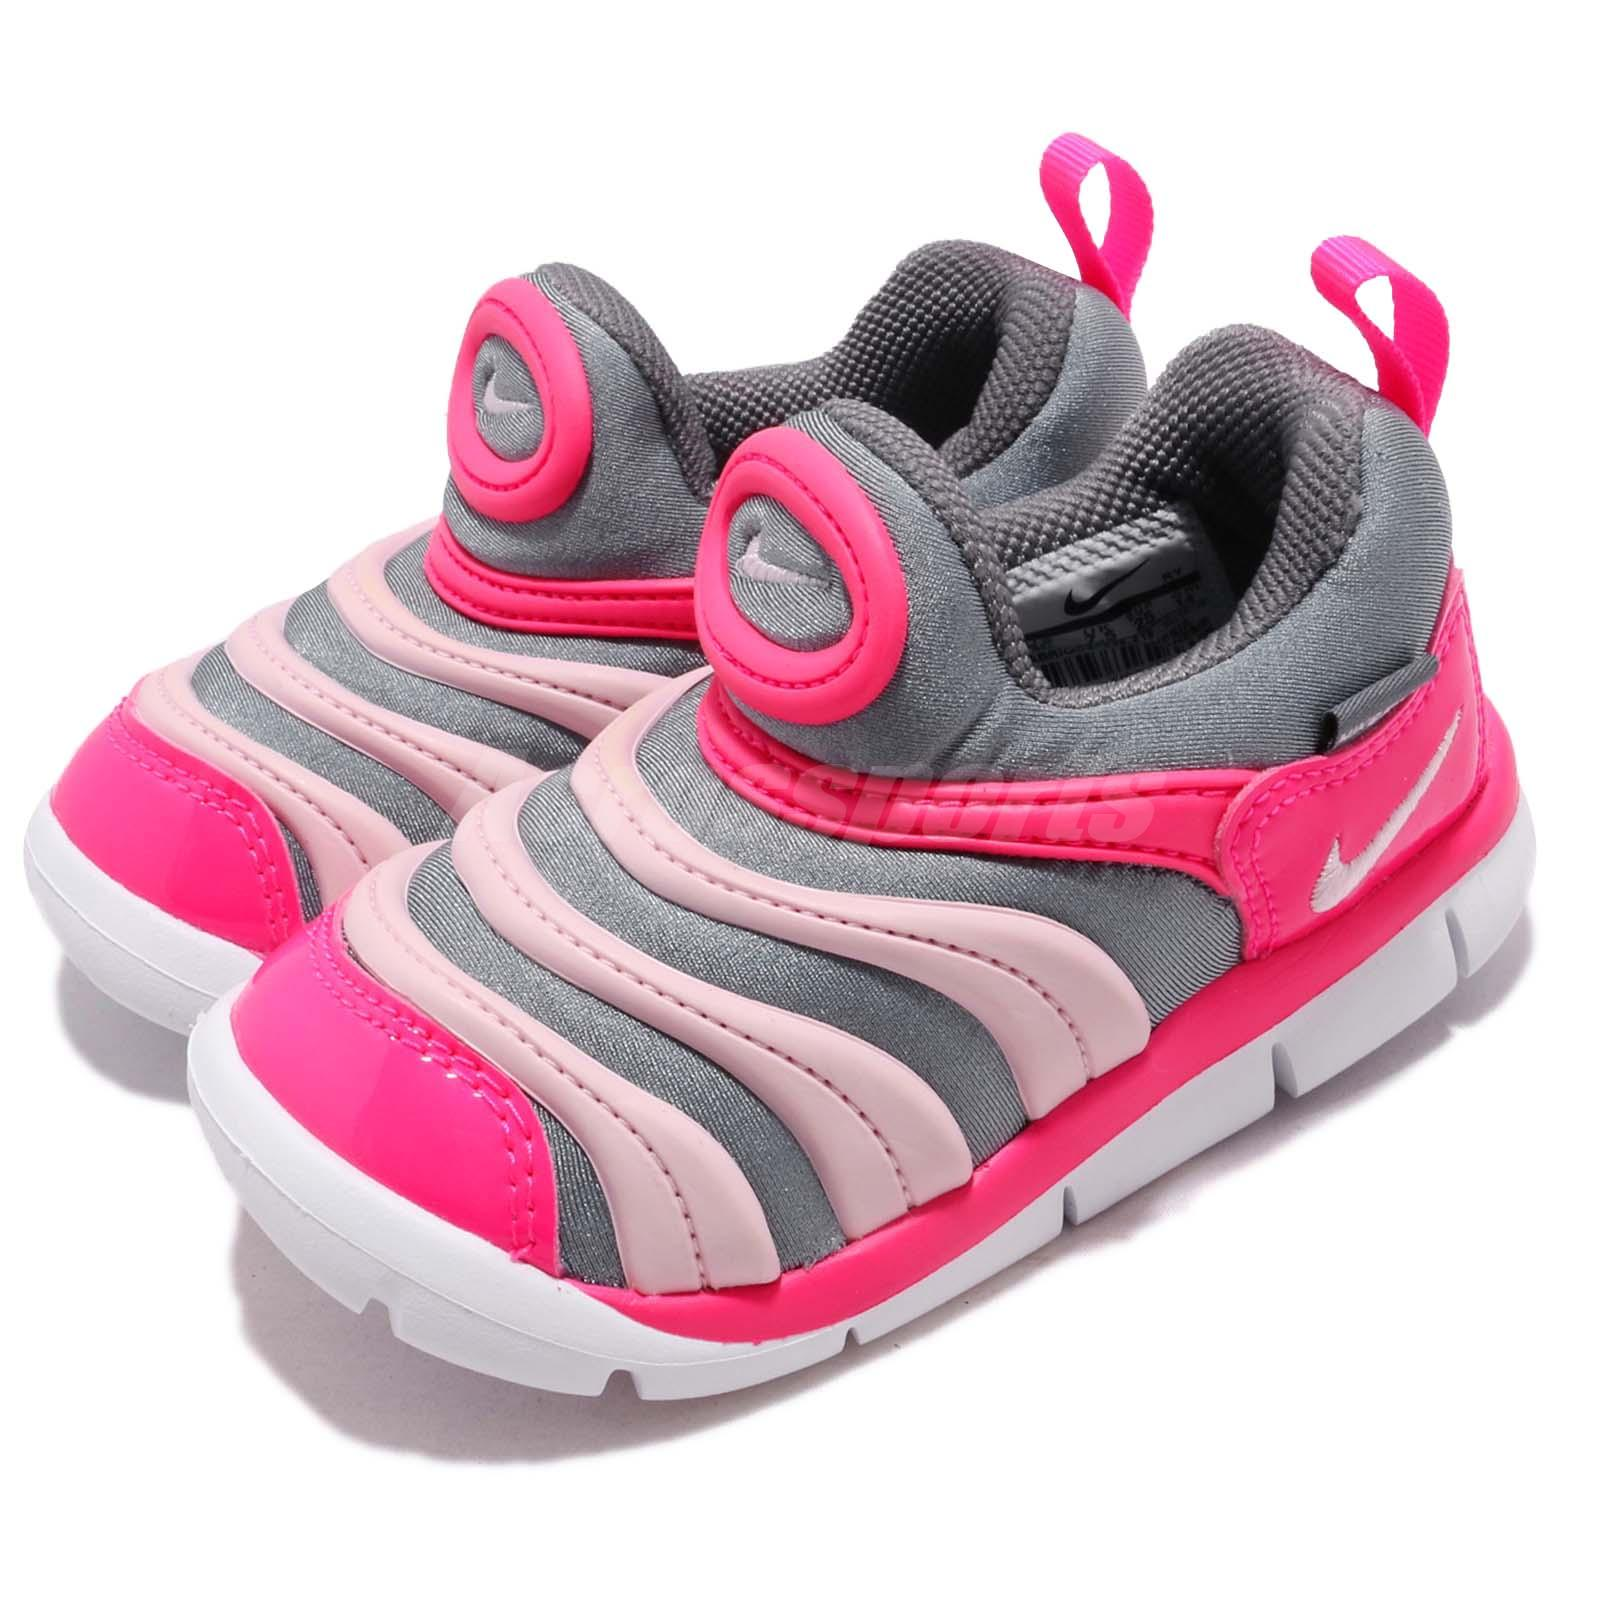 8544b90278b77 Details about Nike Dynamo Free TD Grey Pink White Toddler Infant Baby Shoes  Sneaker 343938-019